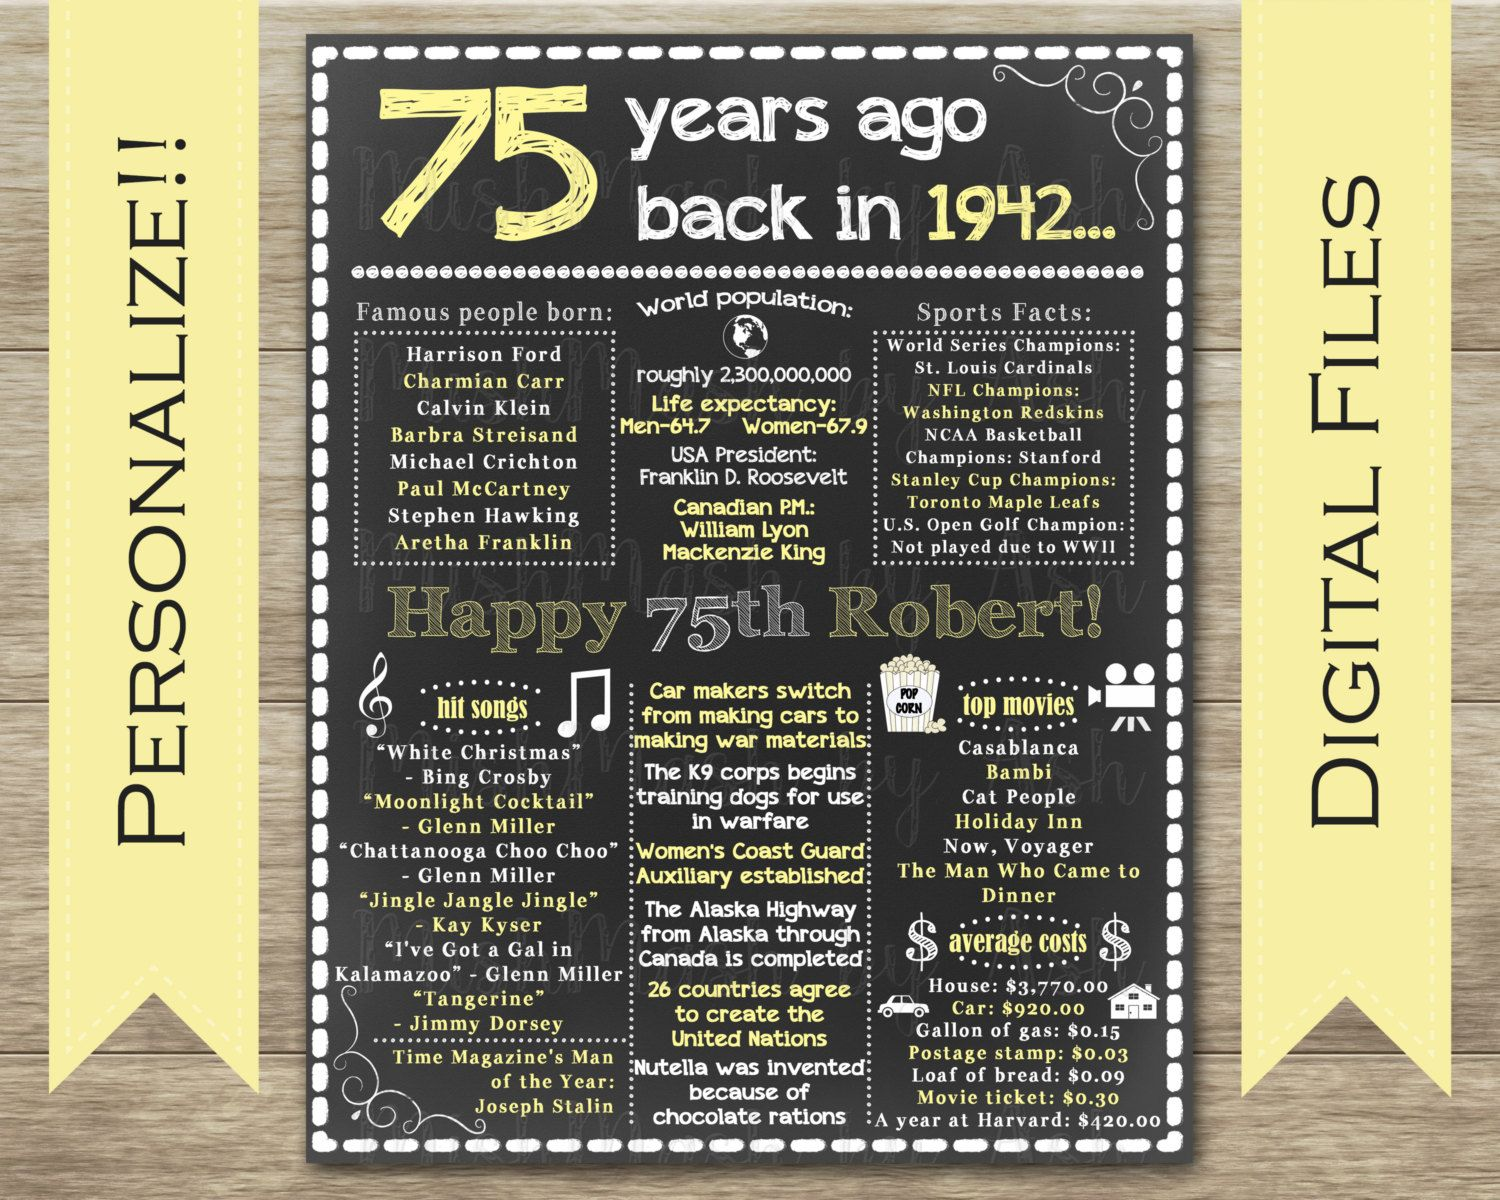 75th birthday sign 75th birthday print back in 1942 for 75th birthday decoration ideas